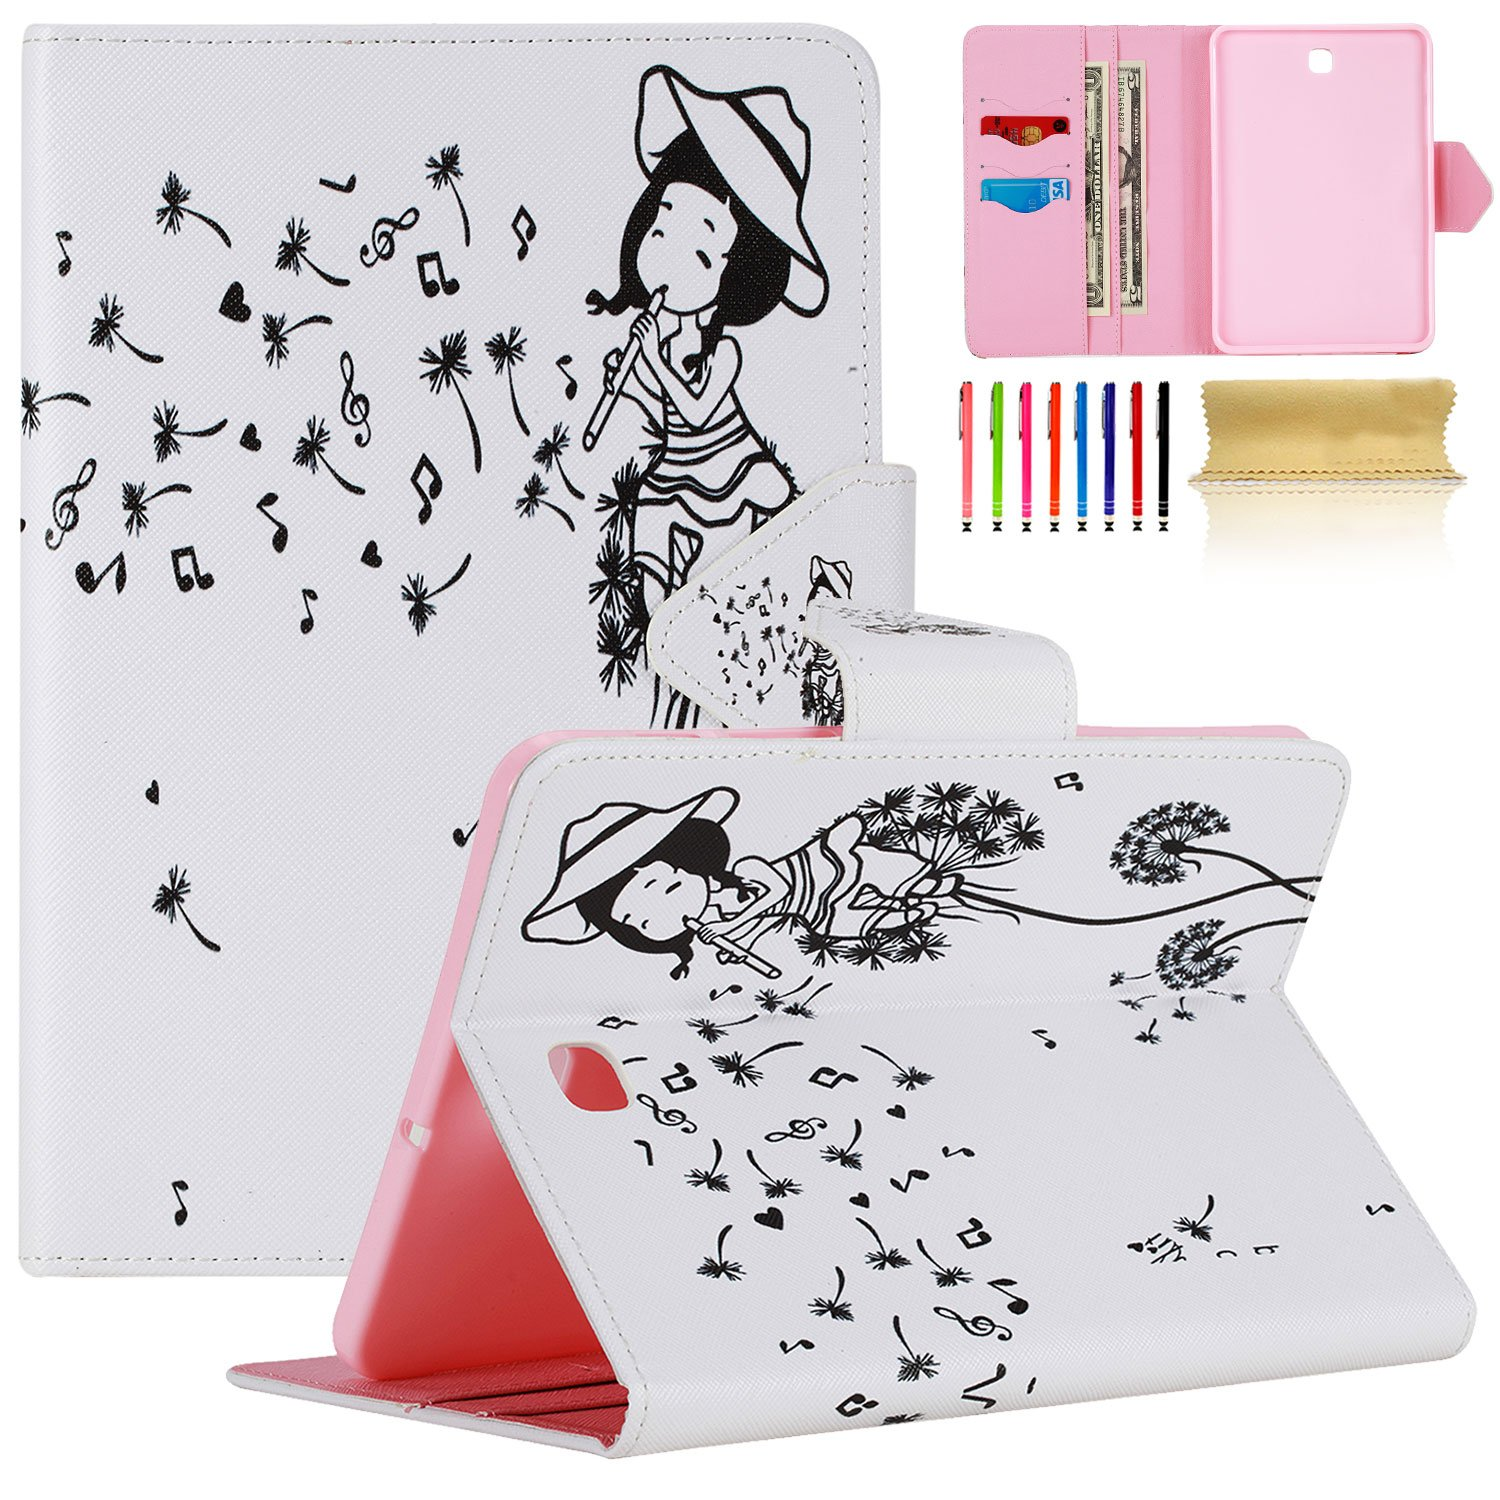 UUcovers Samsung Galaxy Tab S2 8.0 Smart Shell Stand Case, Synthetic Leather Card Holder Case [Auto Sleep/Wake] [Magnetic] Cute Cartoon Cover for Galaxy Tab S2 8.0 (SM-T710/SM-T715), Diamond Unicorn